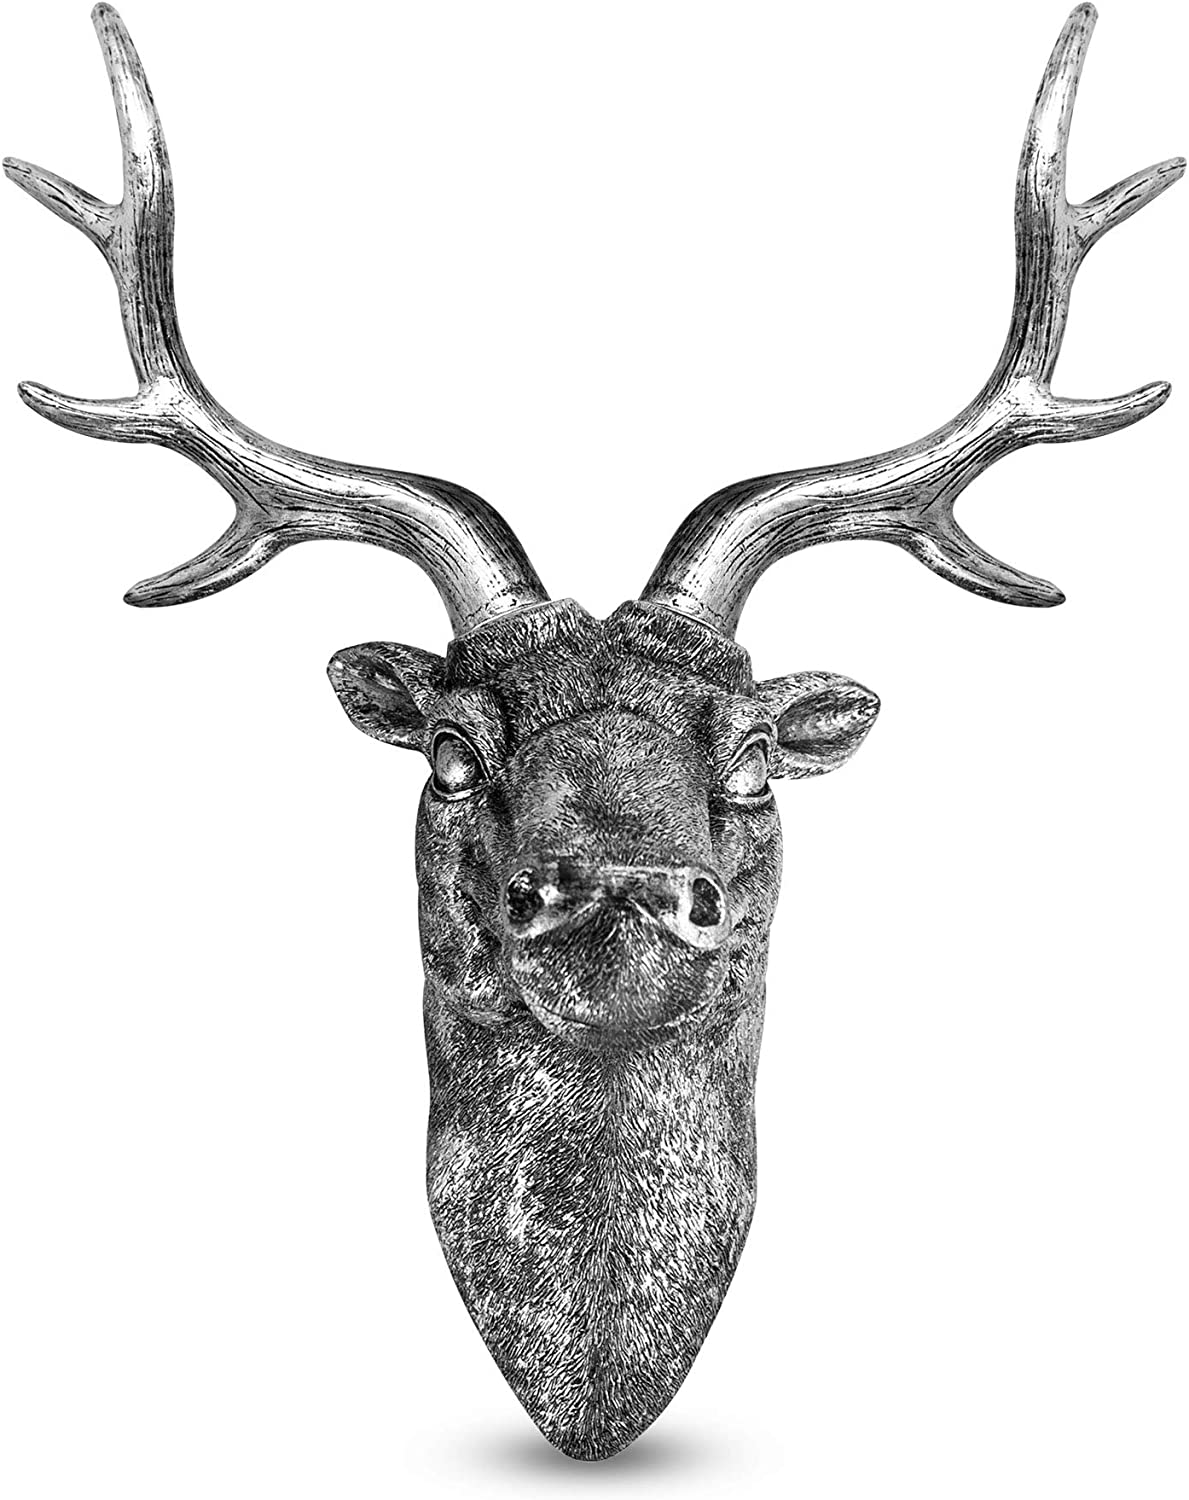 Stag Deer Head Wall Sculpture   Wall Decor Ornament   Home Decoration with Antique Finish   Resin Wall Art   Fixings Included   M&W (Silver)